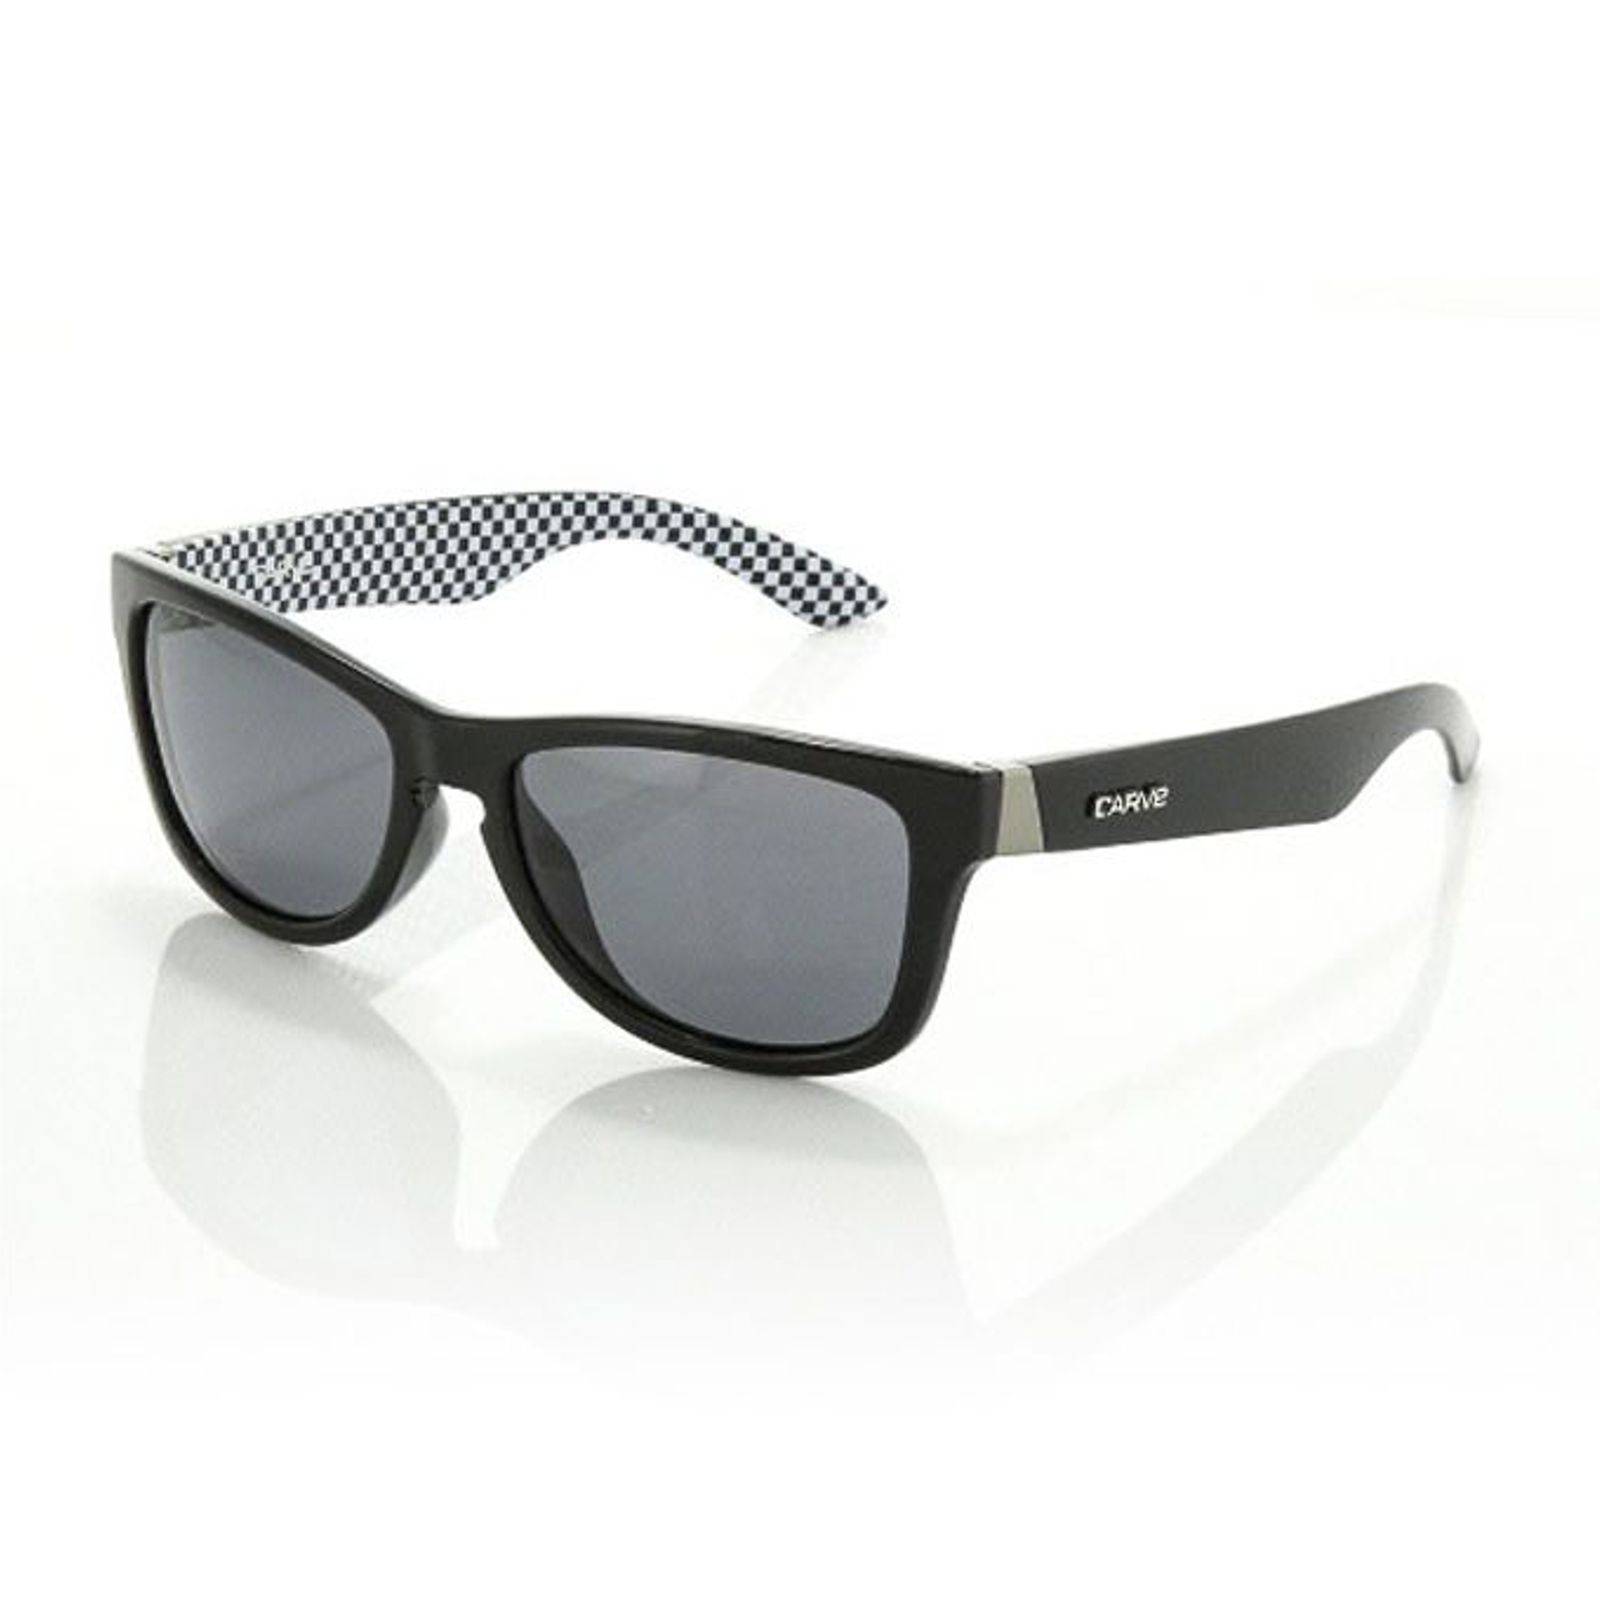 CARVE Sonnenbrille One Step Beyond Schwarz Polar